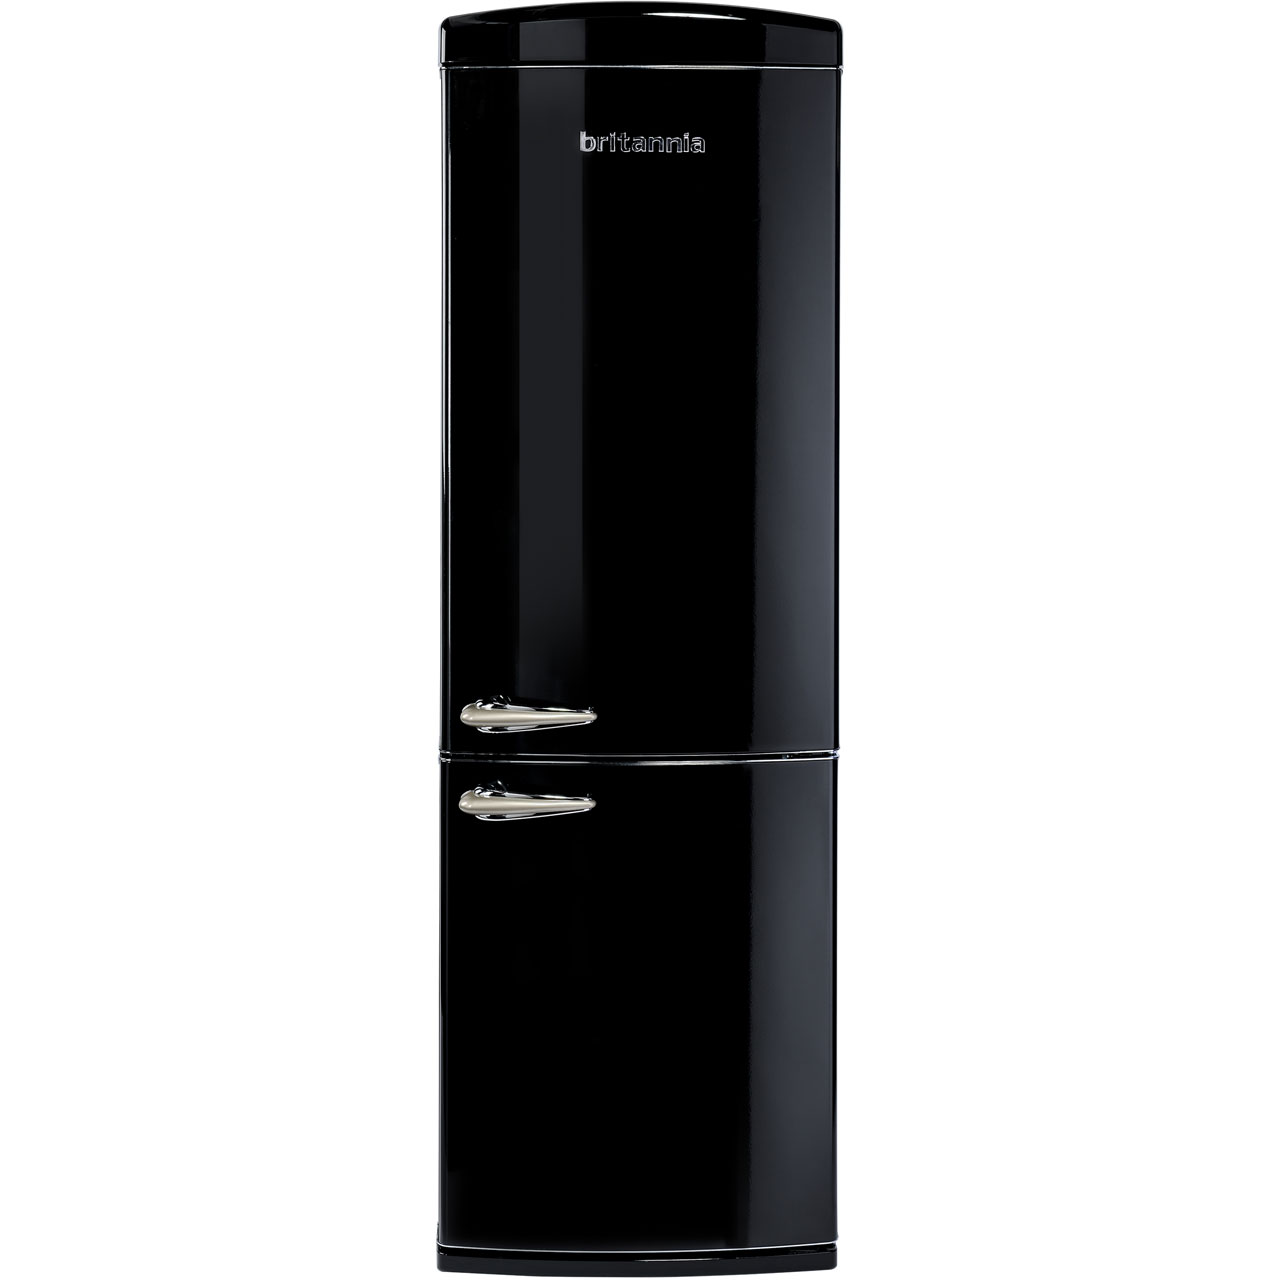 Britannia Breeze Retro 544446212 Free Standing Fridge Freezer Frost Free in Black